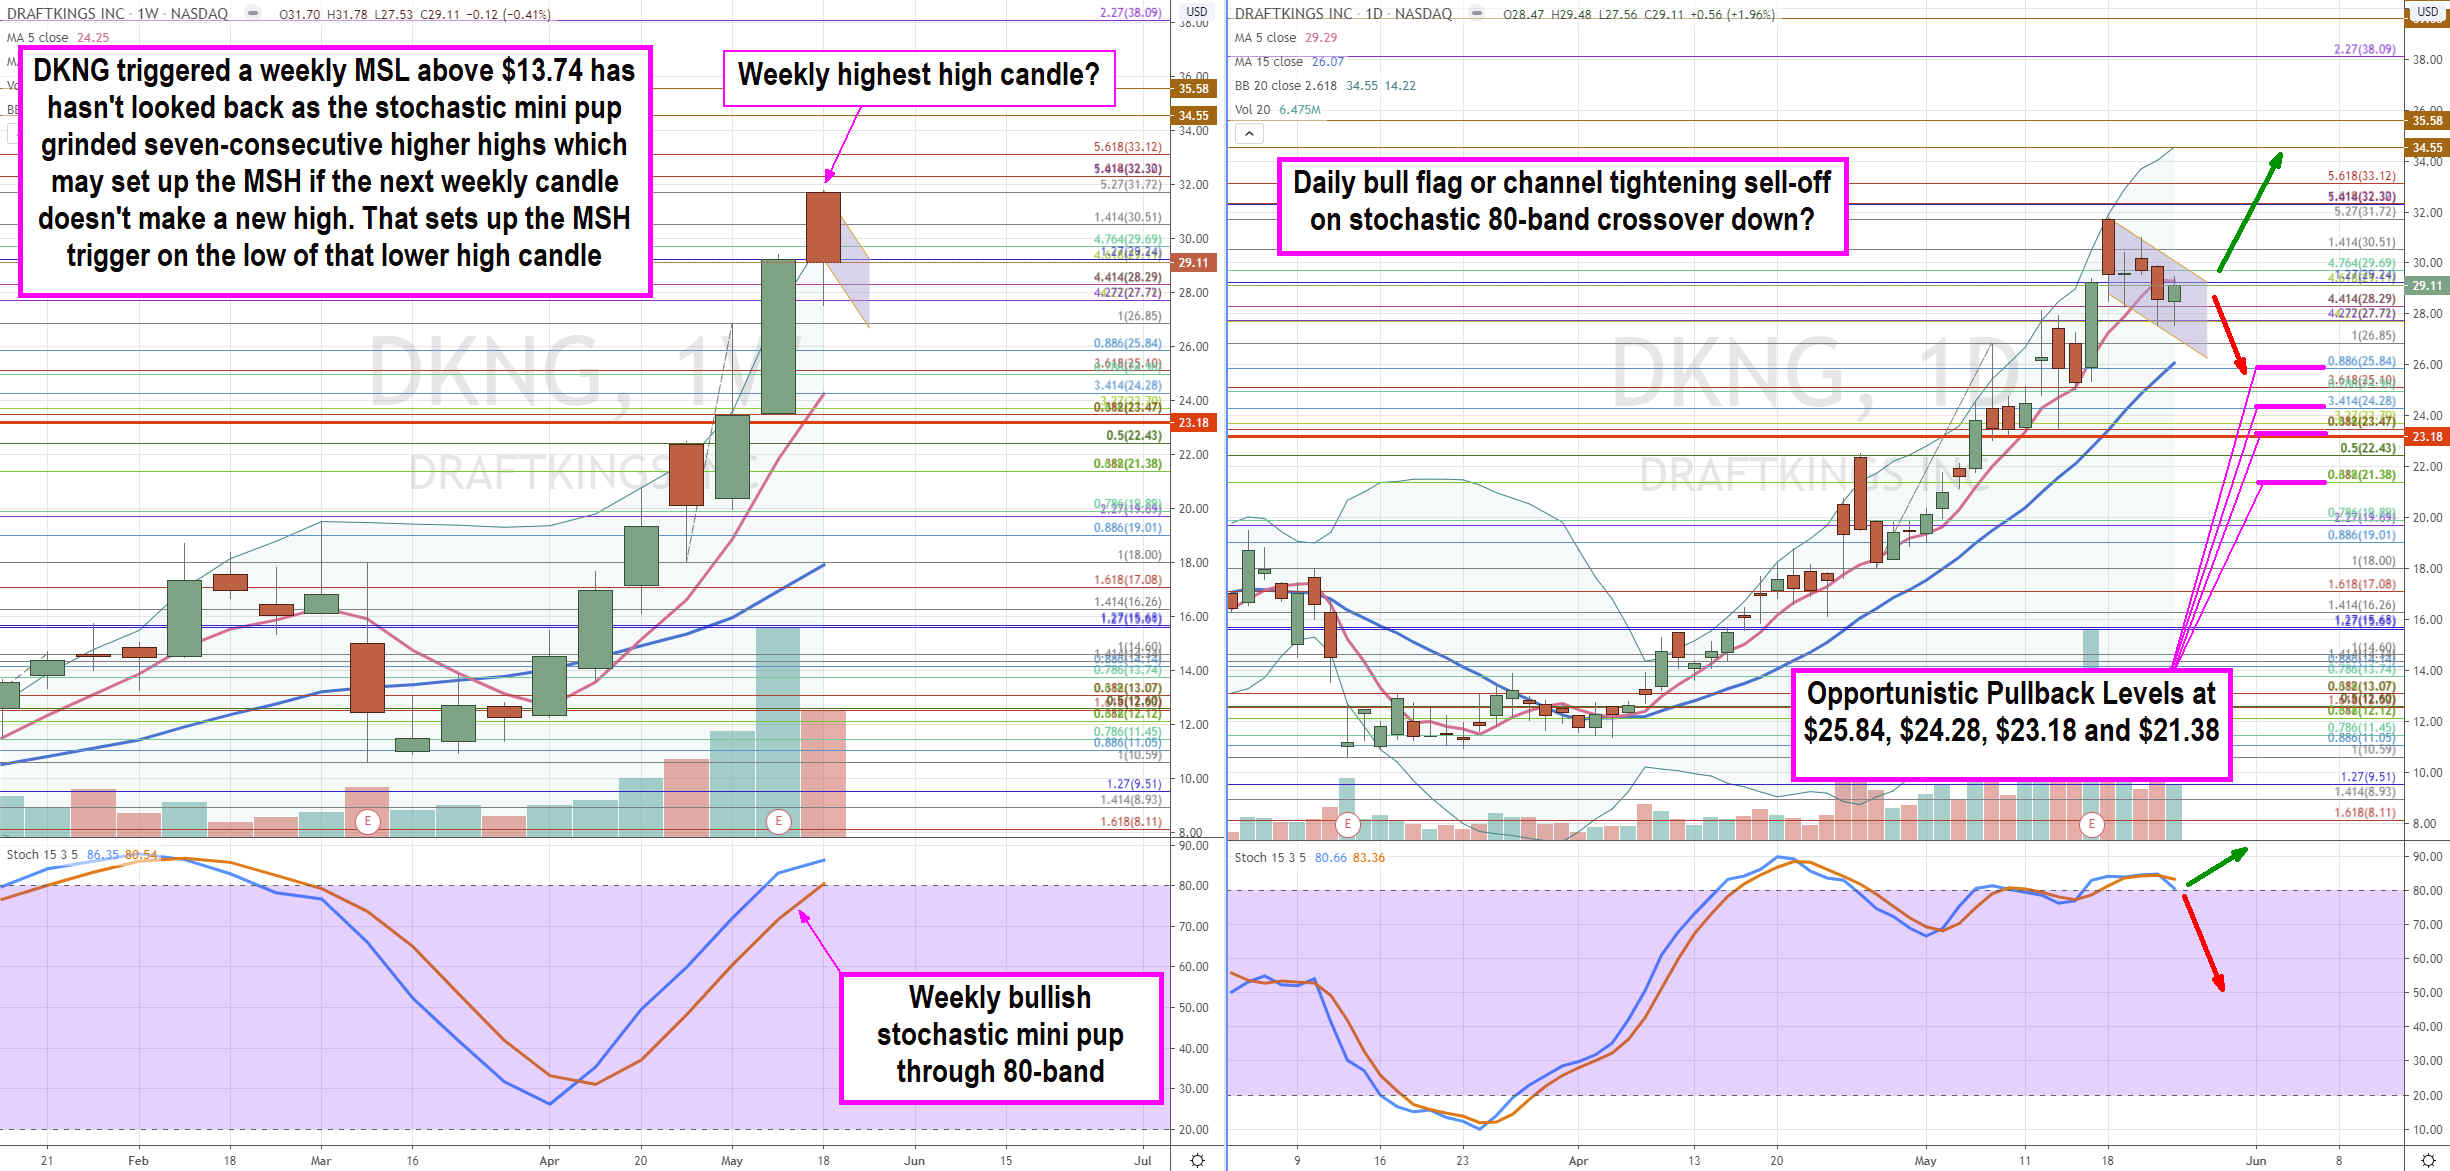 Draft Kings (NASDAQ: DKING) is a Dual Narrative Buying Opportunity